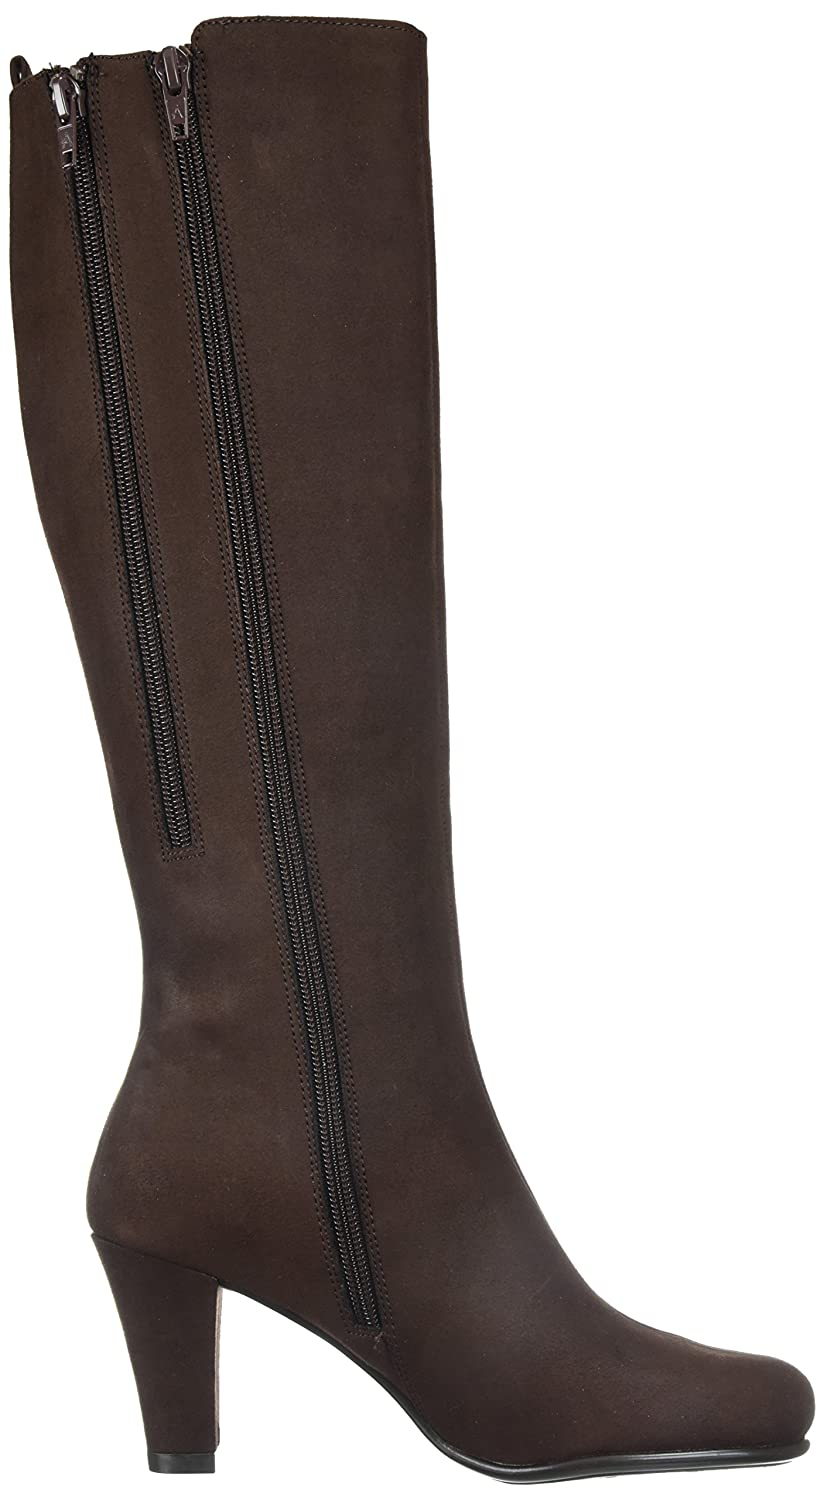 Aerosoles Women's Quick Role Knee M High Boot B074GGFVWZ 9.5 M Knee US|Brown Fabric ab08db